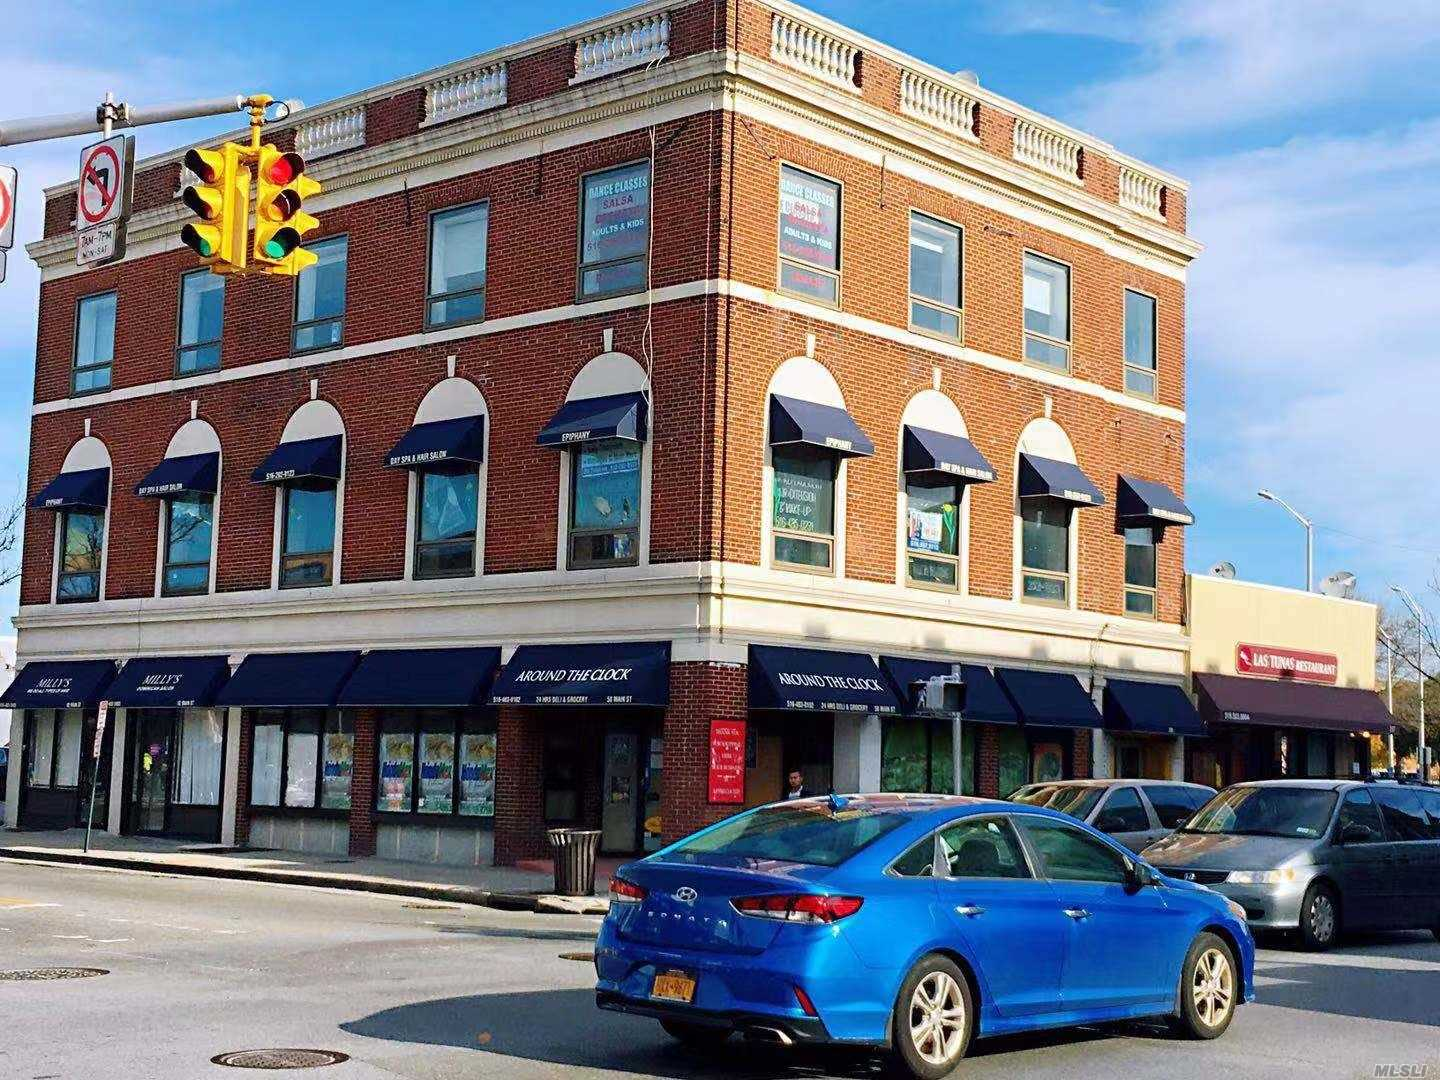 At The Heart Of Hempstead, Corner Lot Cross Main Street In High Foot Traffic Area. 2 Blocks To L.I.R.R. Station. 3 Ground Floor Retails: 2 Restaurants & 1 Salon) & 2 Office: (3rd Floor Dance Studio & Vacant 2nd Floor). Separate Utility Meters For All Units.